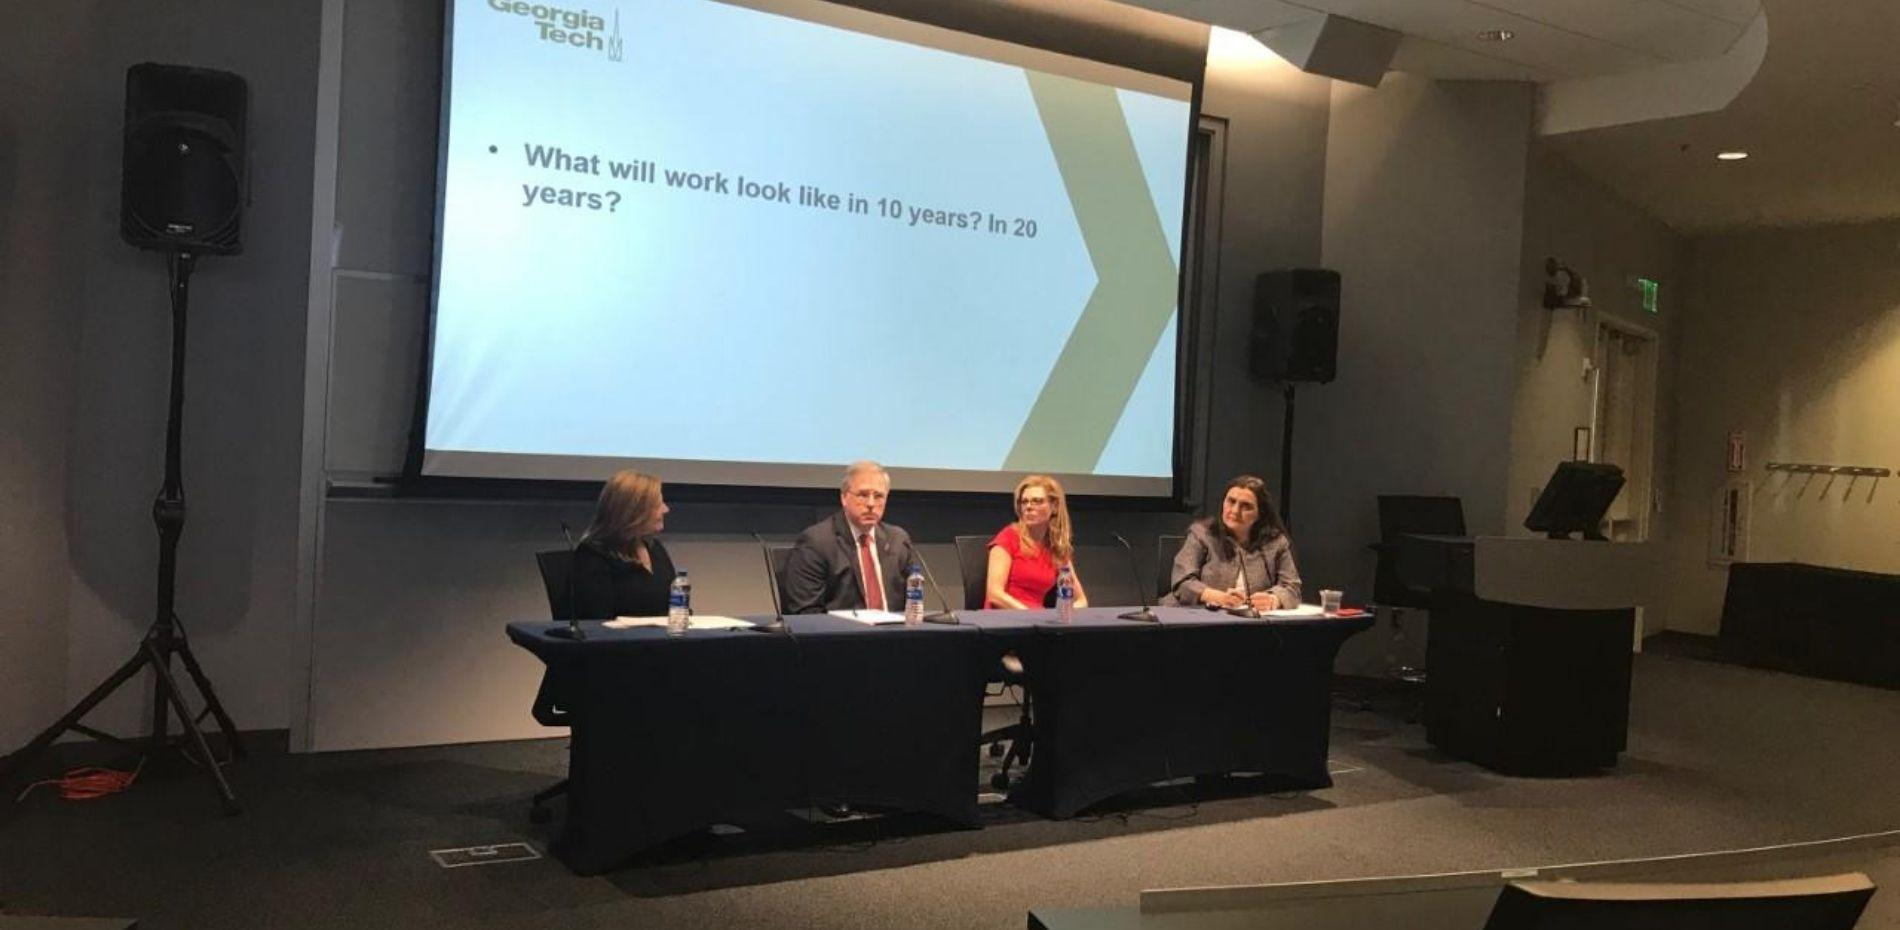 """The panelists sit at the front of the room with the question """"what will work look like in 10 years?"""" behind them"""